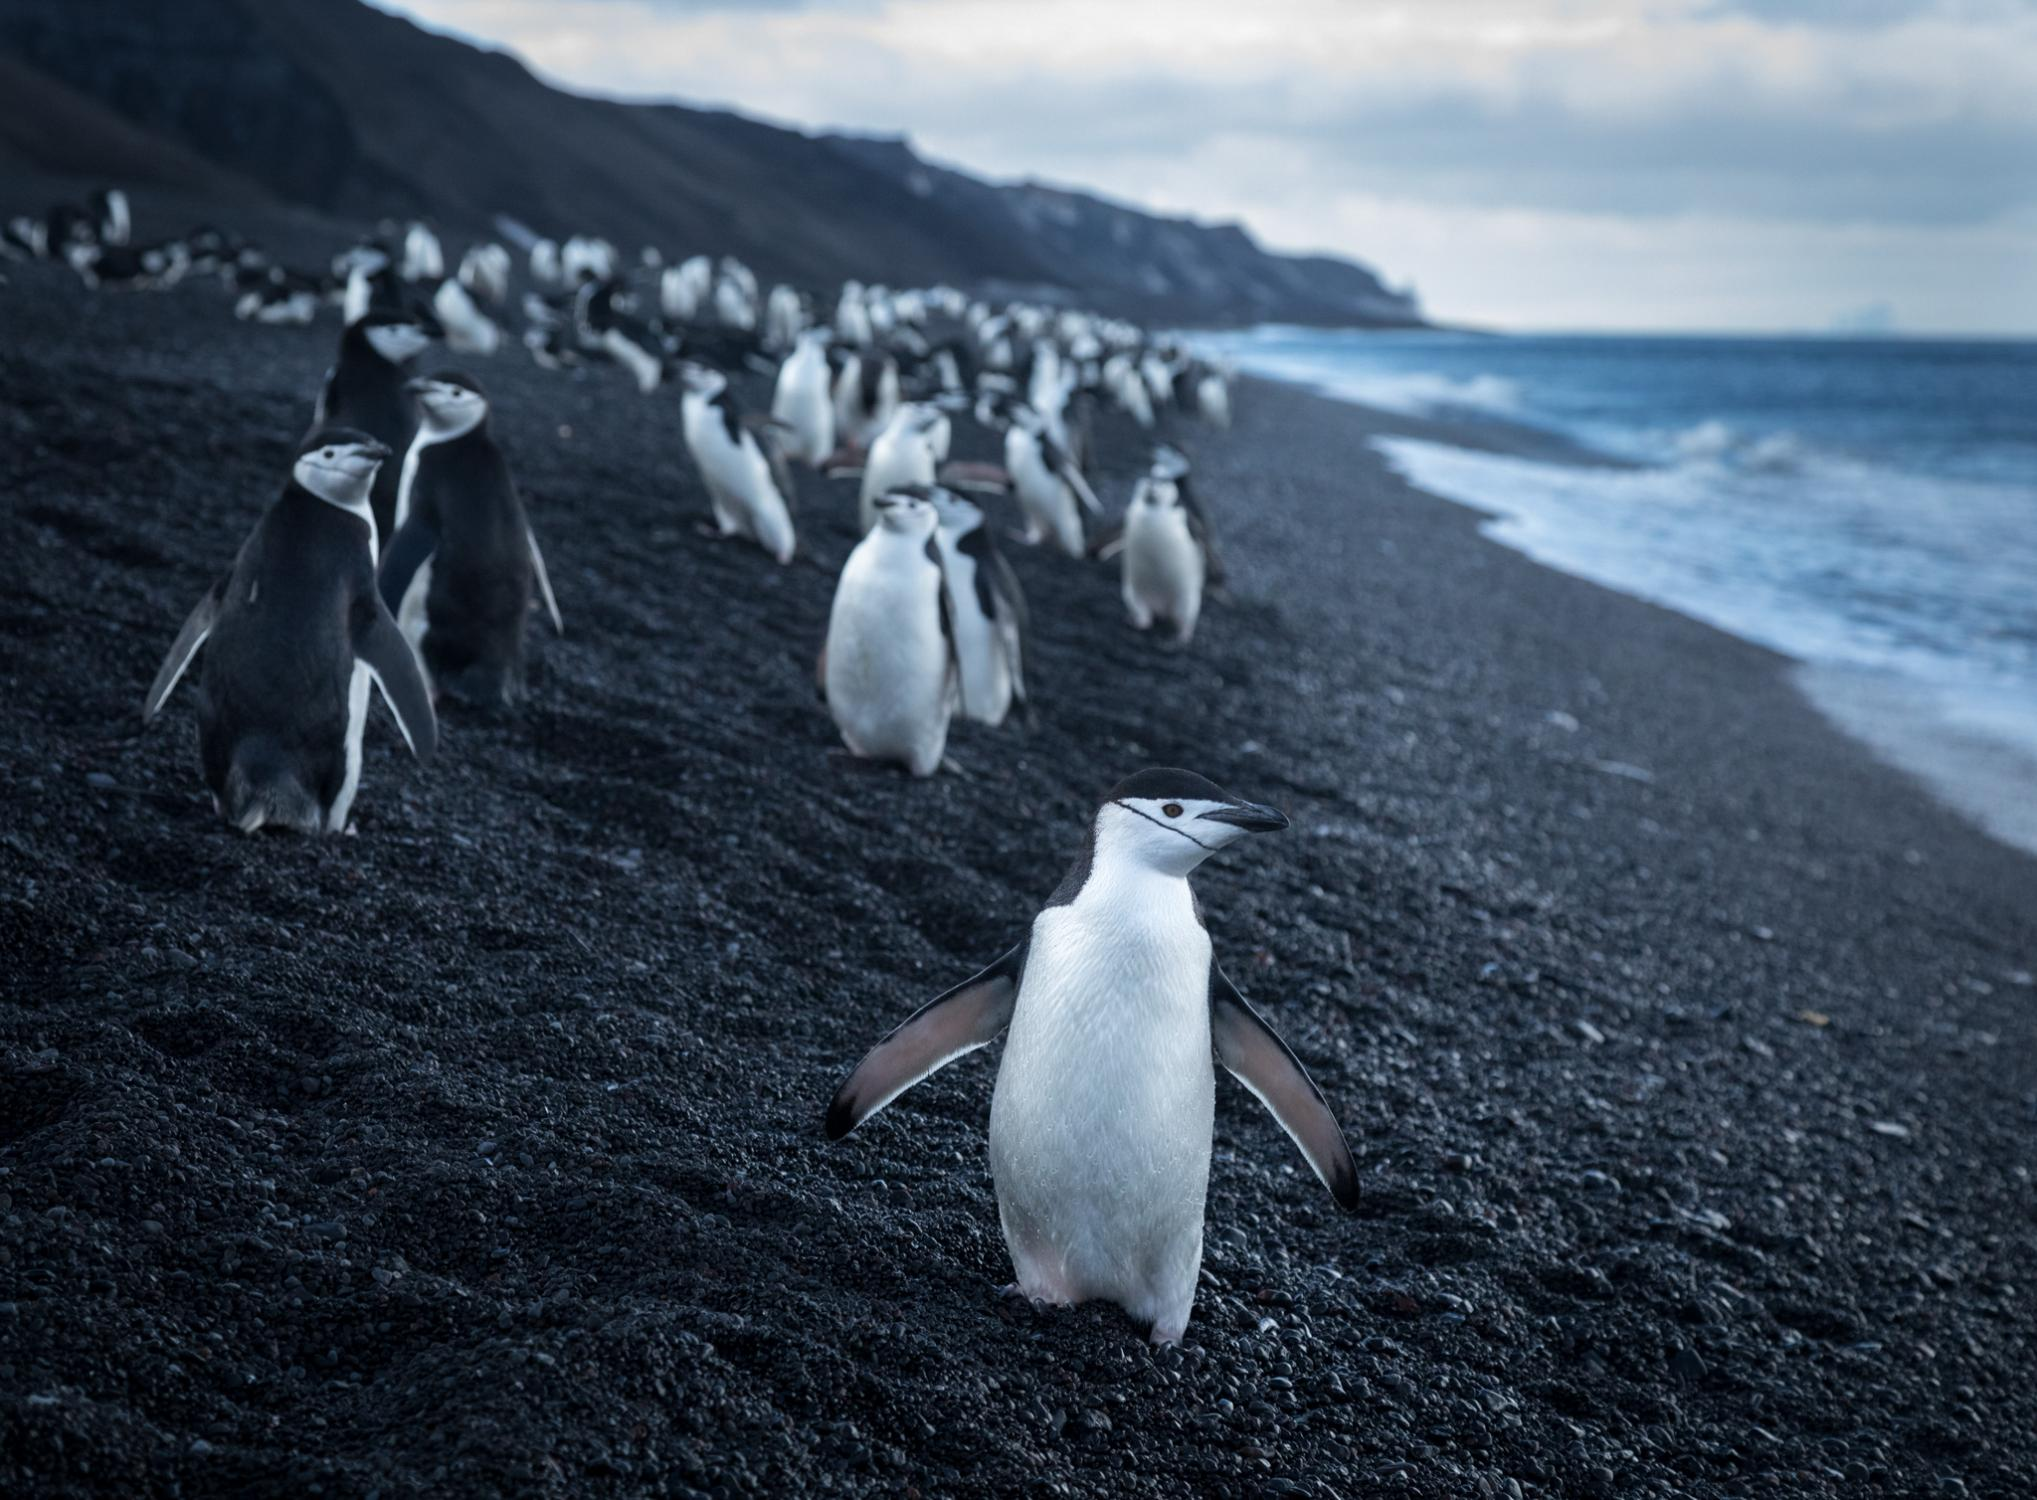 Chinstrap penguins on the volcanic beach at Baily Head, on the southeast corner of Deception Island - a natural amphitheater with Antarctica's largest colony of chinstrap penguins, estimated at 100,000 breeding pairs.